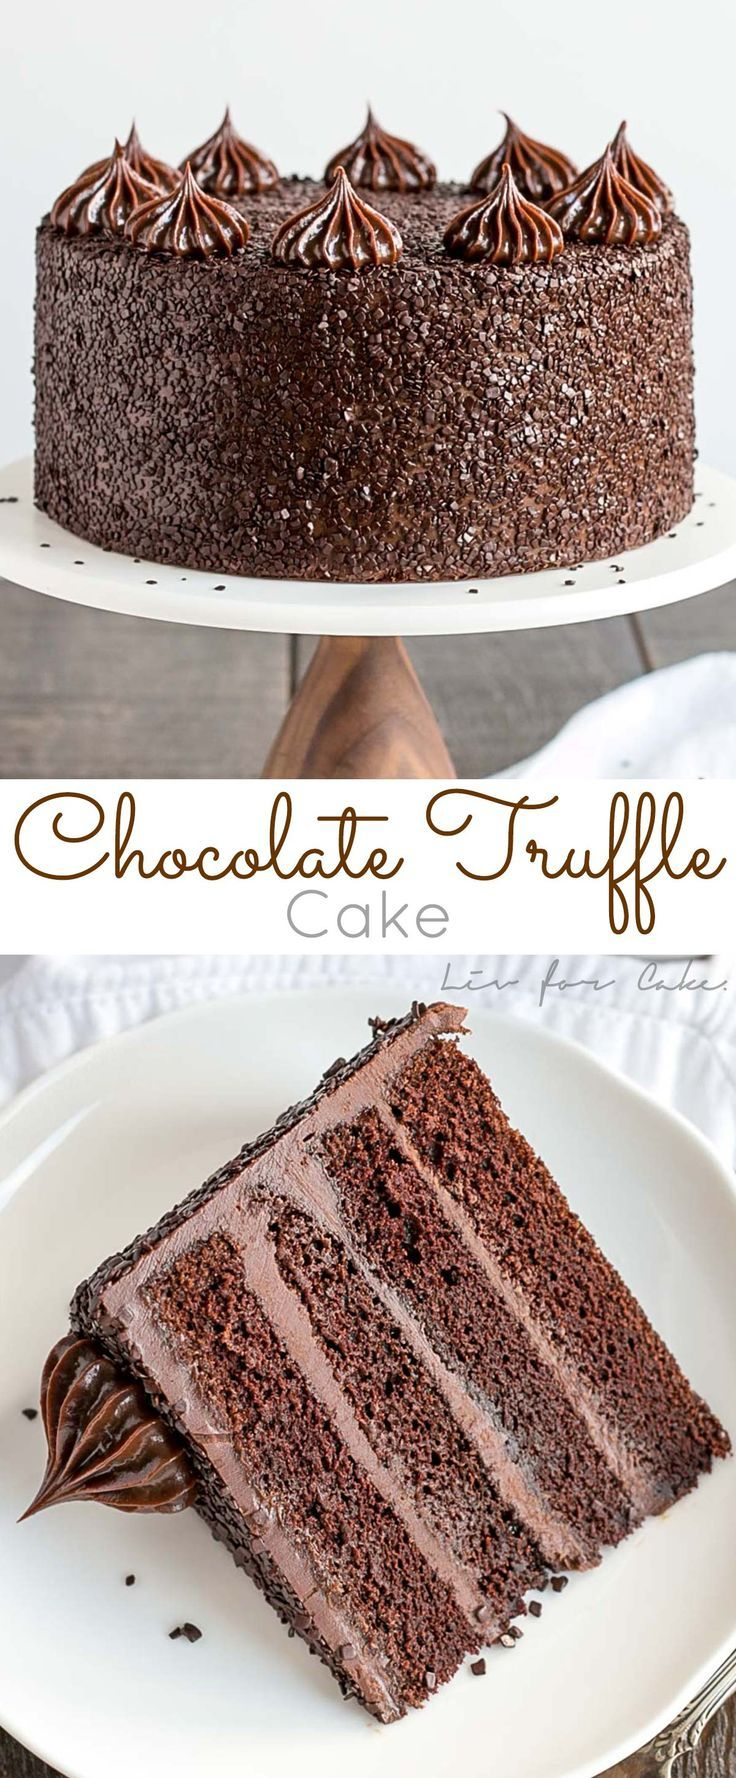 Best 20+ Chocolate ganache frosting ideas on Pinterest | Ganache ...